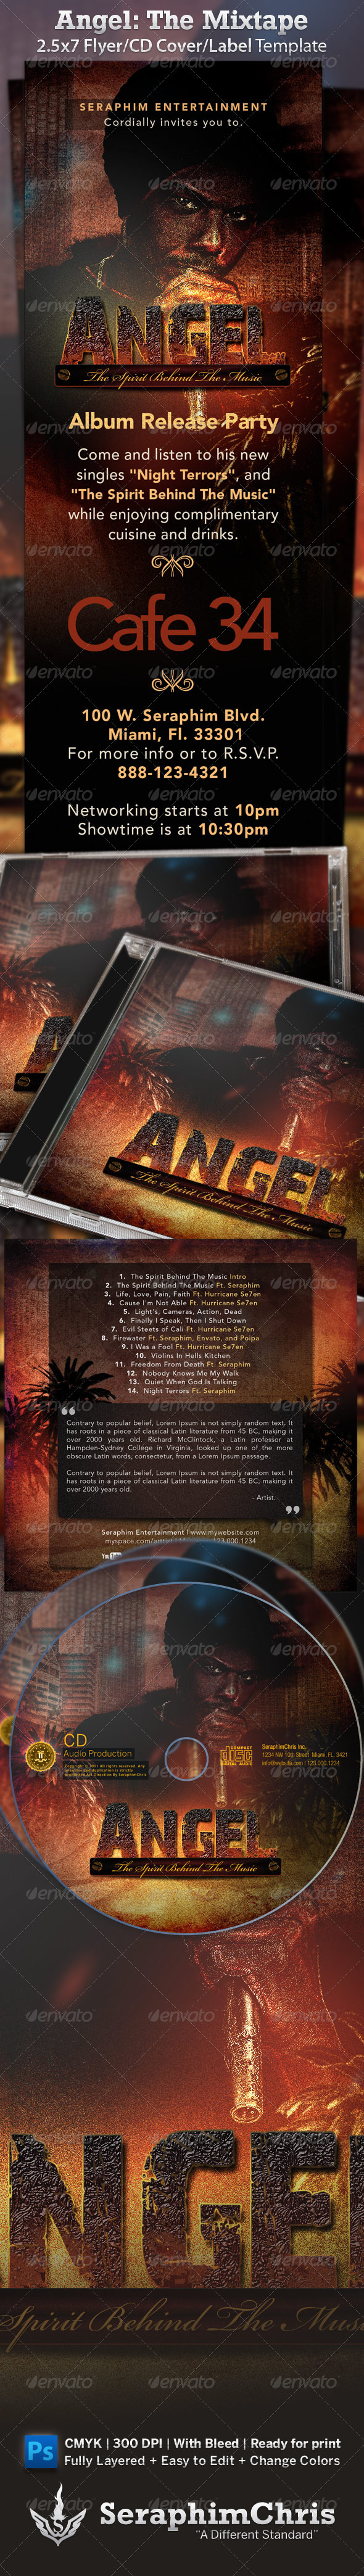 GraphicRiver Mixtape Album Flyer Angel The Spirit 976770